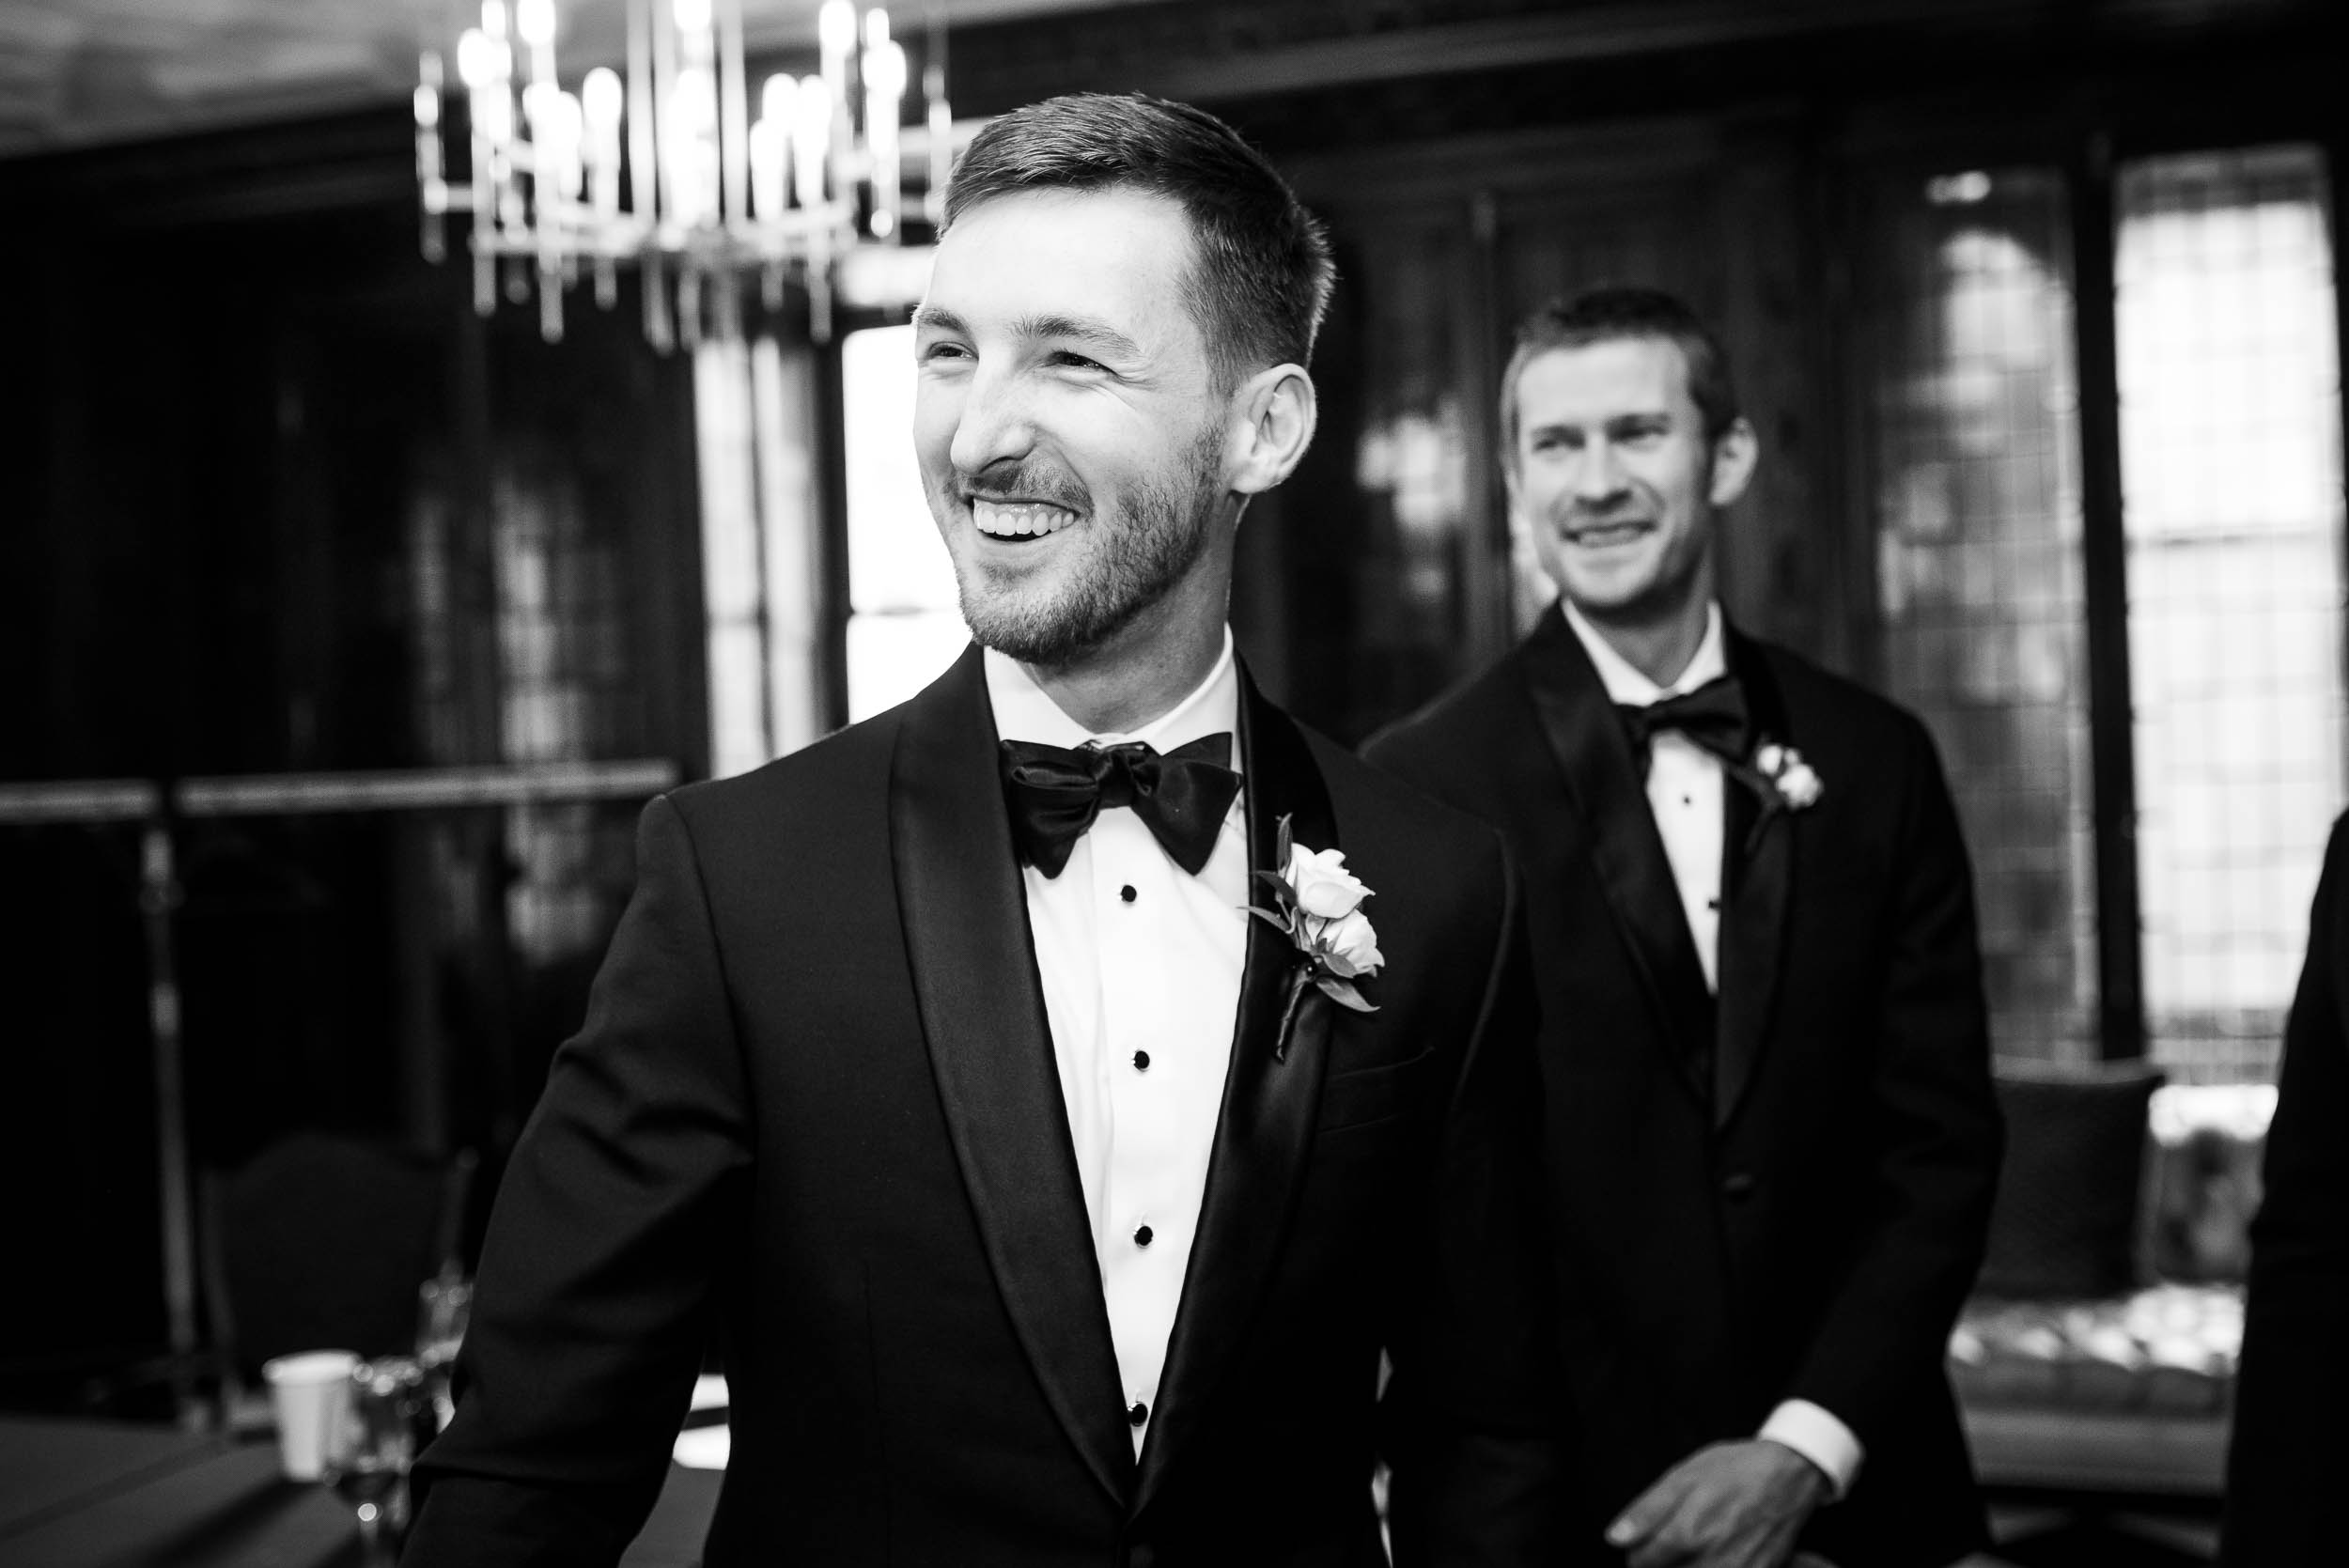 Groom shares a laugh with his friends during a Blackstone Chicago wedding.